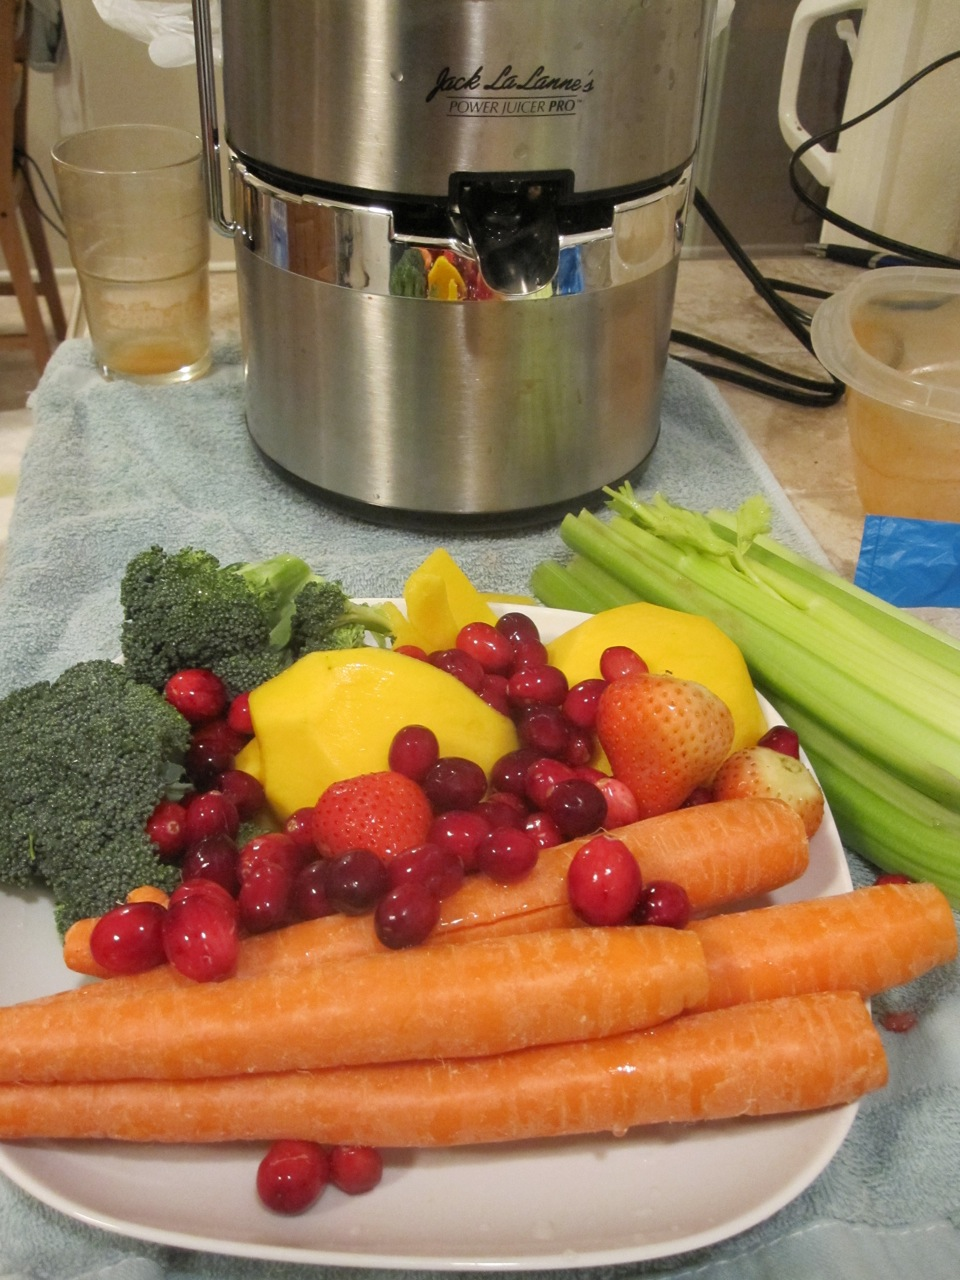 Juicer & ingredients